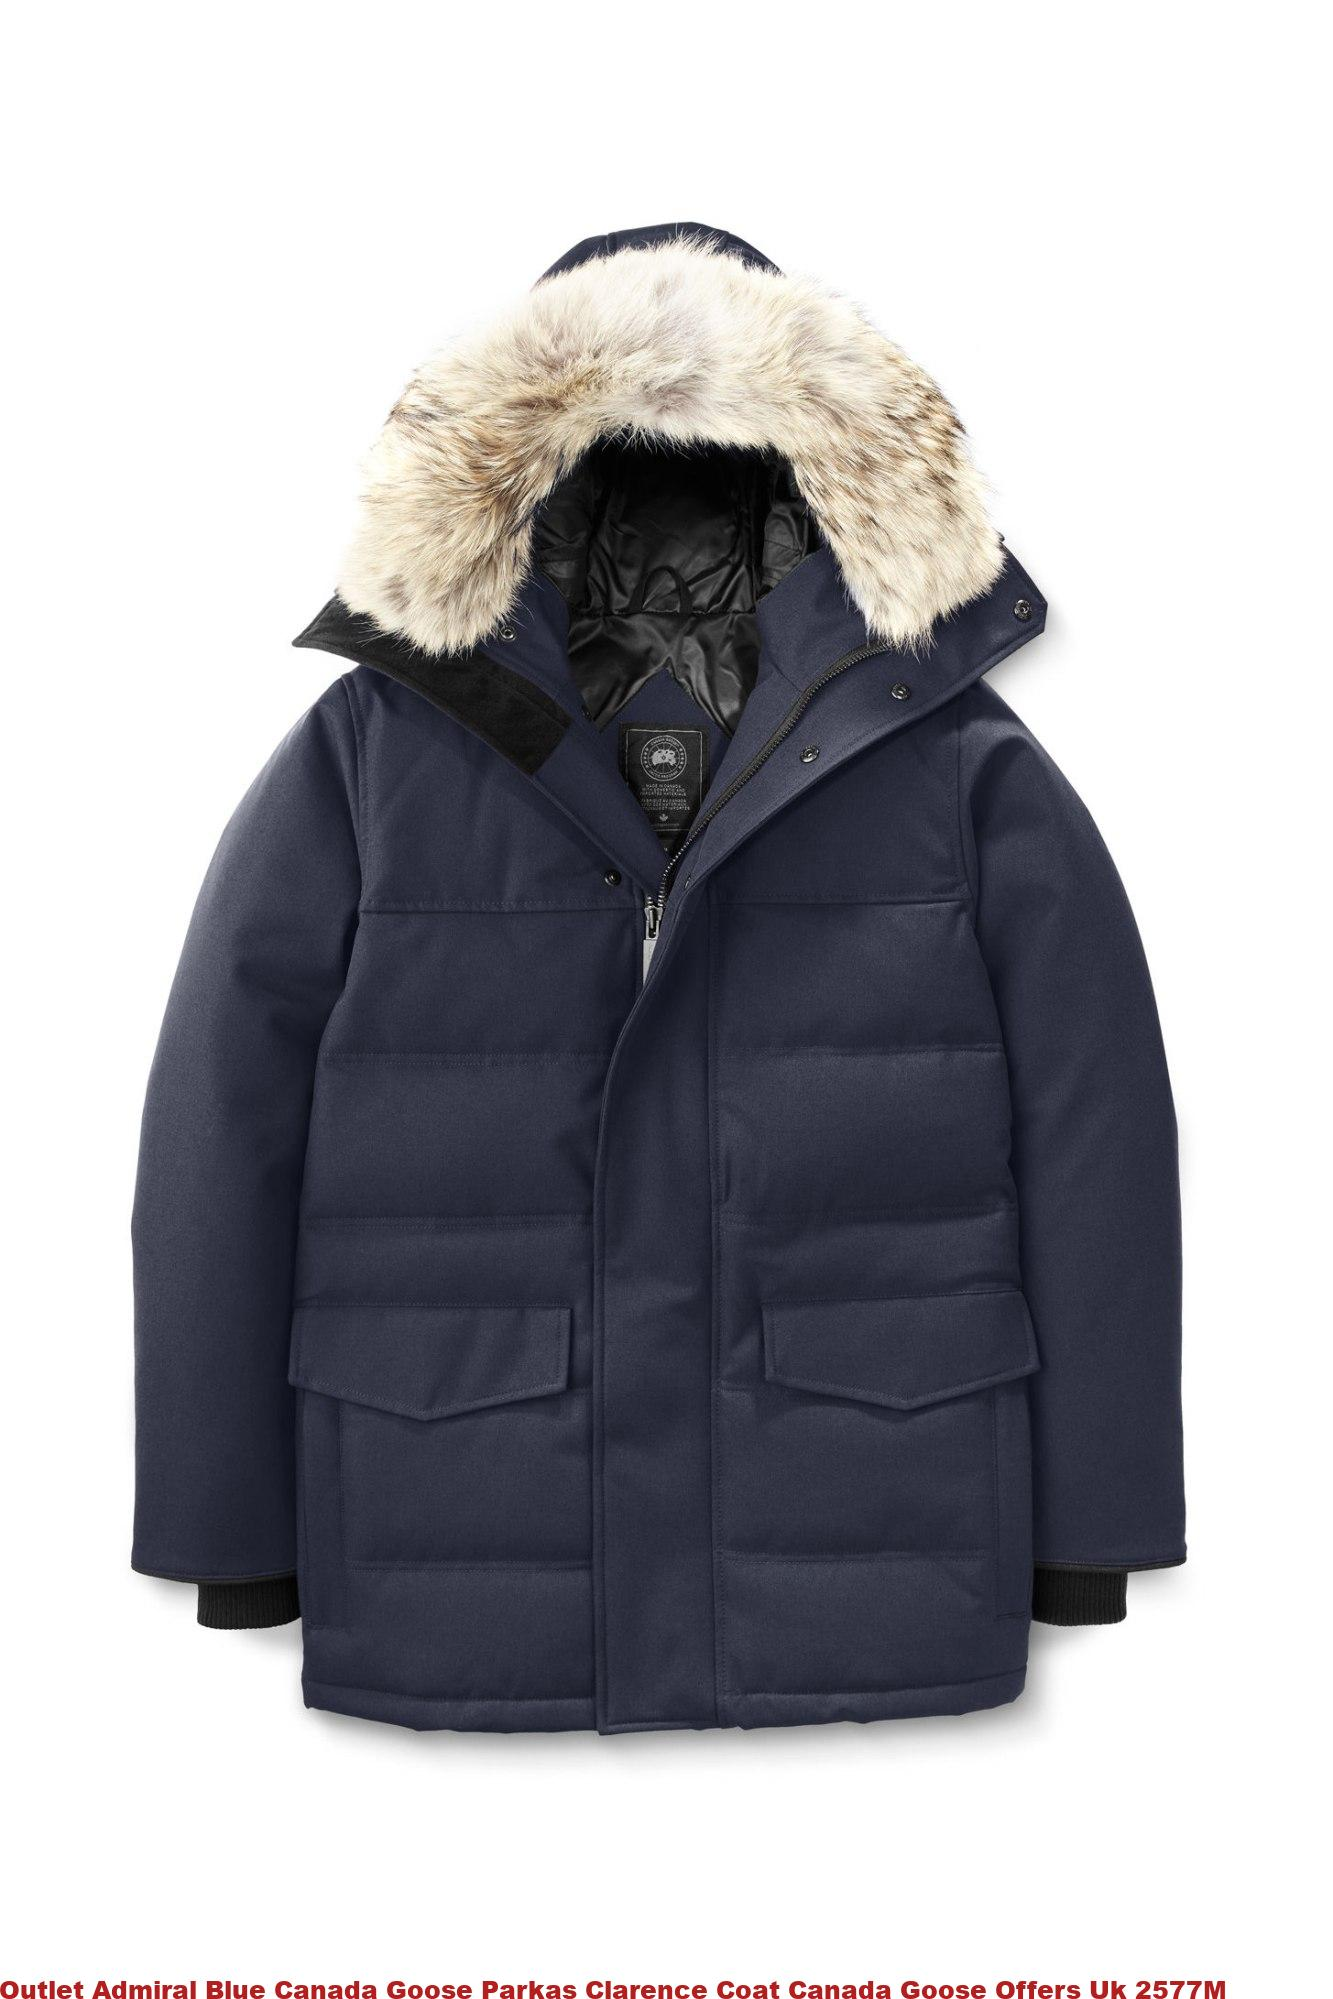 ddbb937daa3 Outlet Admiral Blue Canada Goose Parkas Clarence Coat Canada Goose Offers  Uk 2577M – Black Friday Cheap Canada Goose Outlet Jacket Parka On Sale